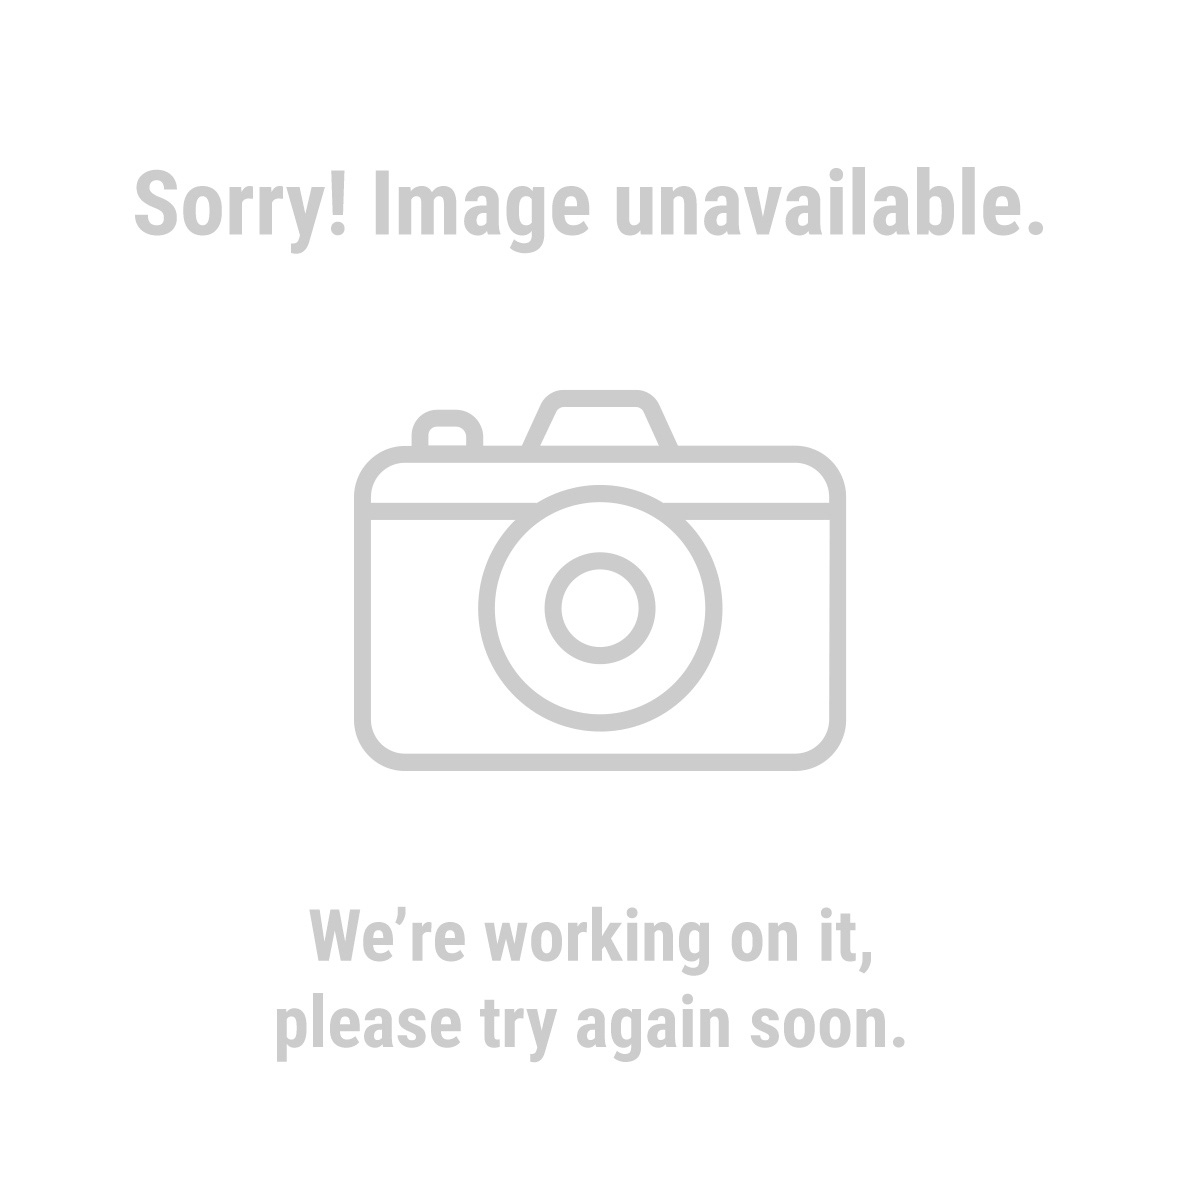 Pittsburgh® 63167 18 Pc SAE & Metric T-Handle Ball End Hex Key Set